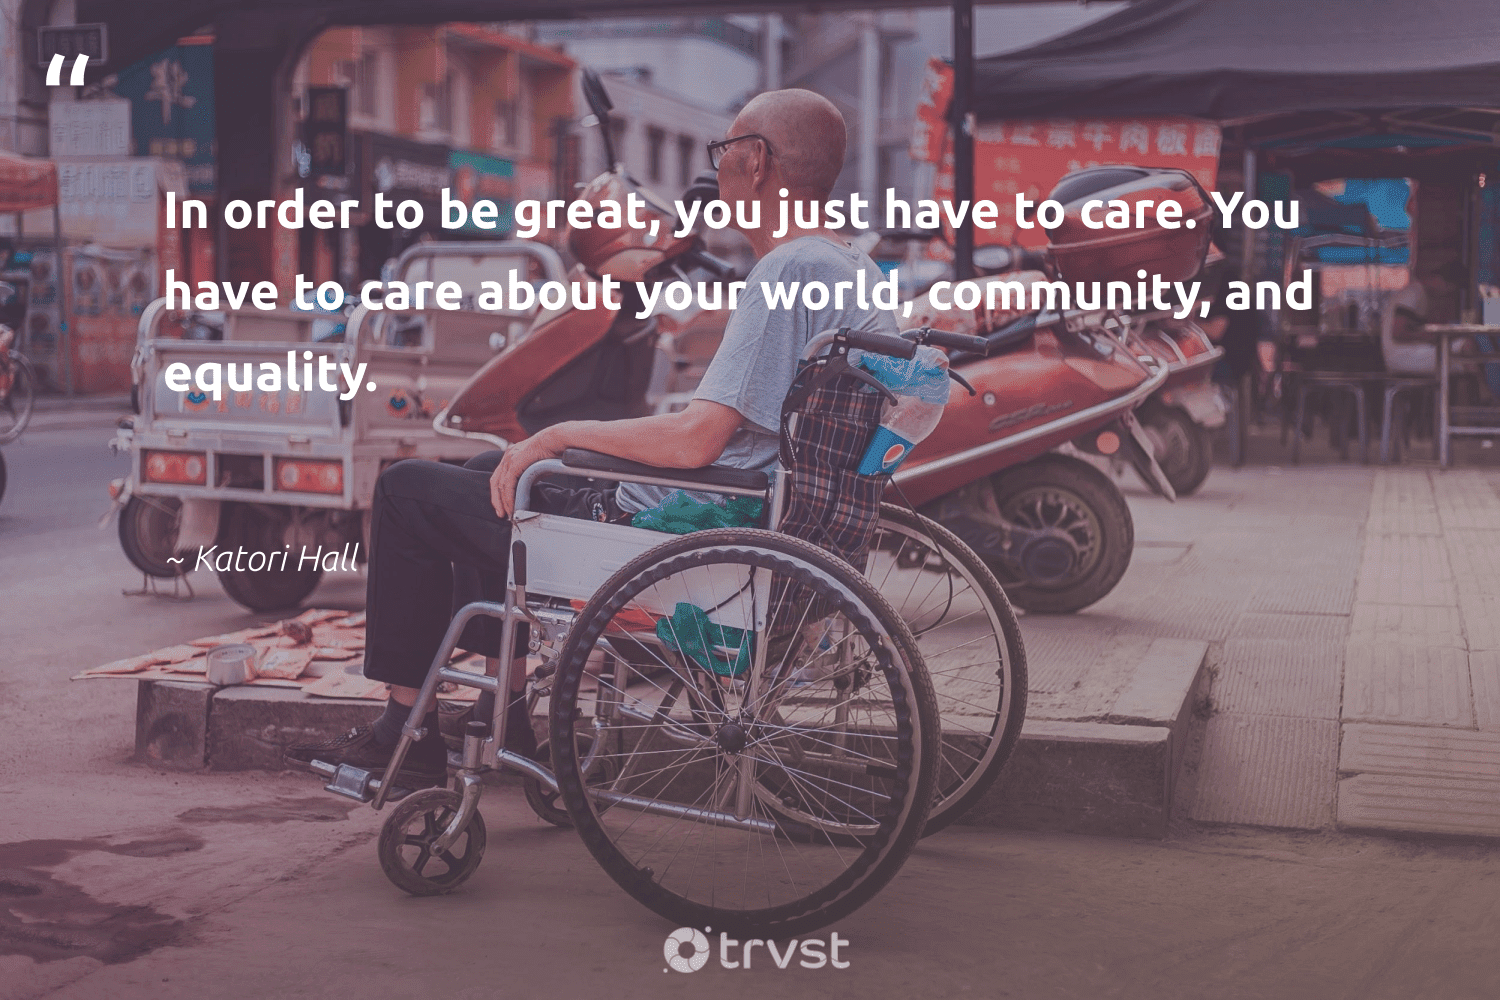 """""""In order to be great, you just have to care. You have to care about your world, community, and equality.""""  - Katori Hall #trvst #quotes #equality #begreat #standup #socialchange #giveback #beinspired #equalrights #socialgood #makeadifference #thinkgreen"""